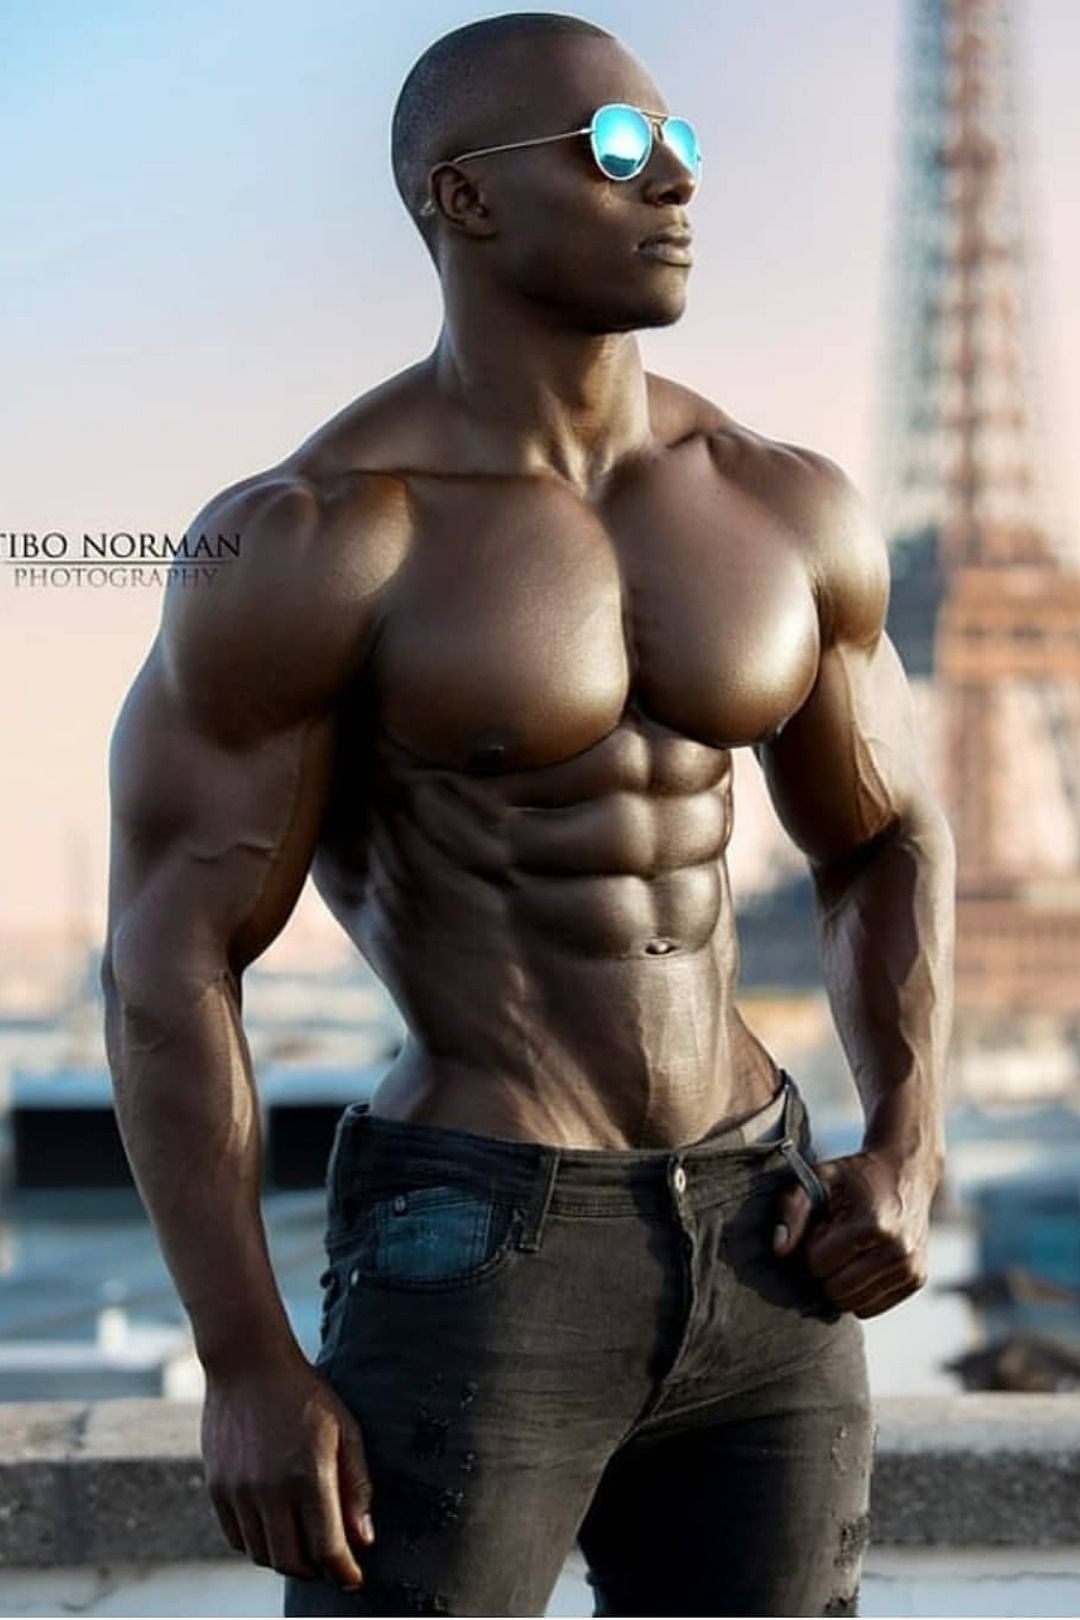 Legal Steroid Bodybuilding